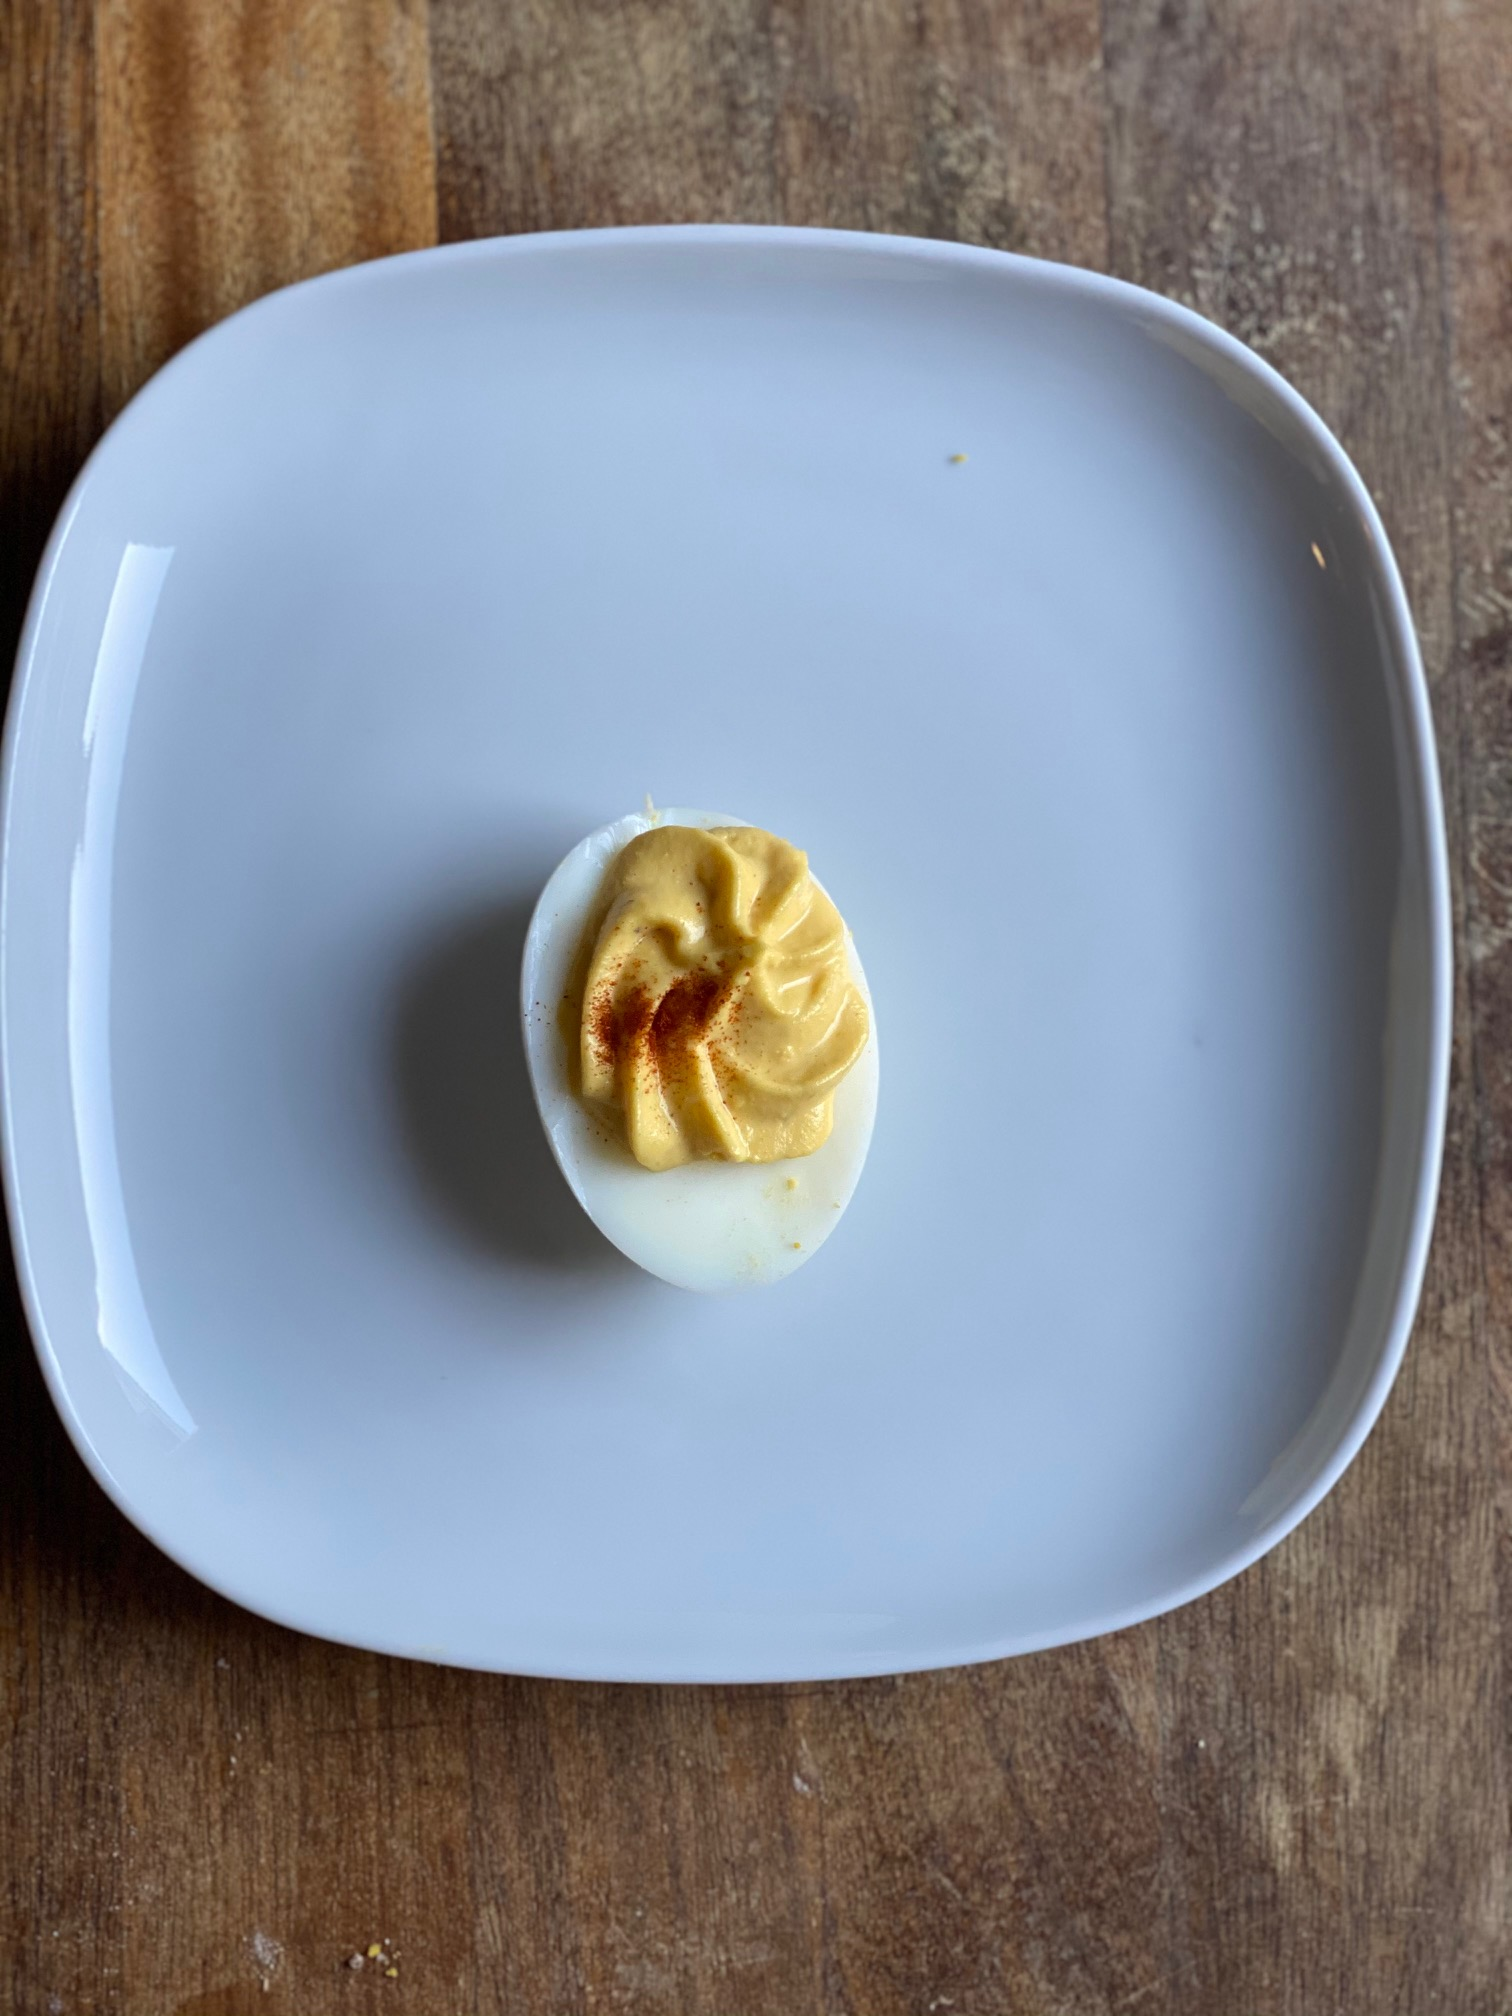 Deviled Eggs and Sadness